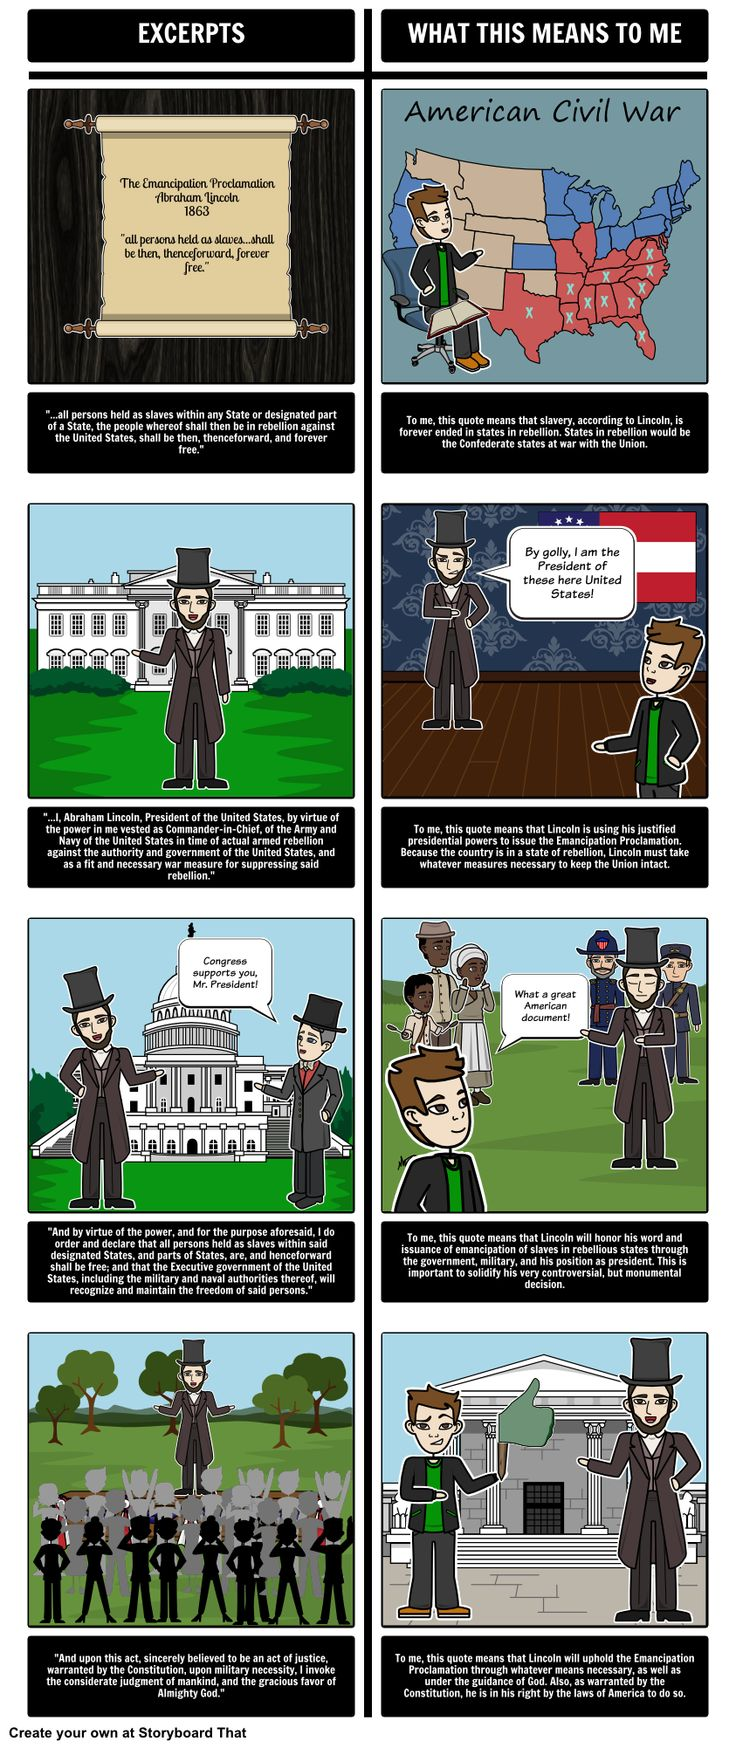 Emancipation Proclamation - Meaning: This activity can be used as either an introductory assignment or exit assignment. Students will interpret excerpts from the Emancipation Proclamation text and articulate what each excerpt means to them.